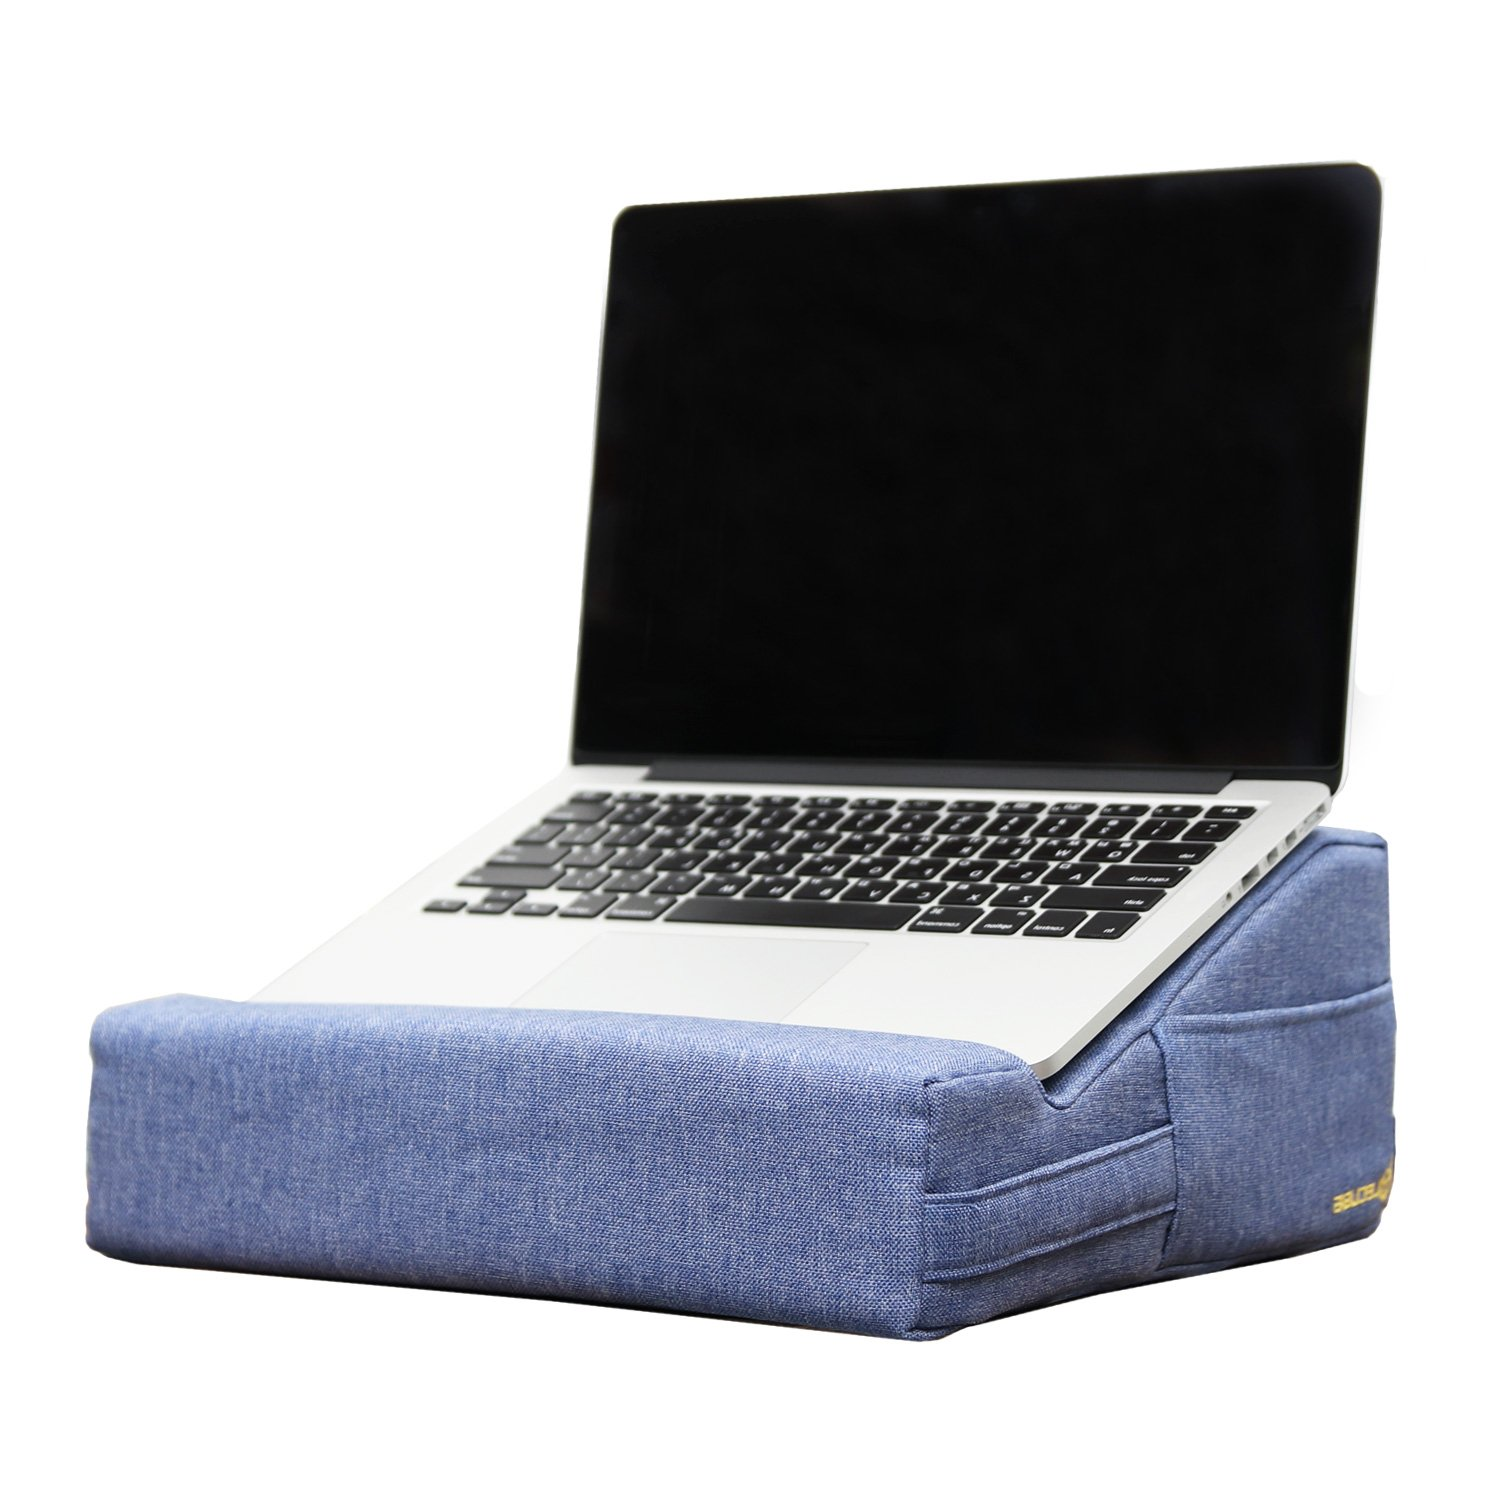 LECUBE Lap Desk Cushion Laptop Pillow Stand for Bed Sofa (BLUE, Fits up to 14'' Laptop)